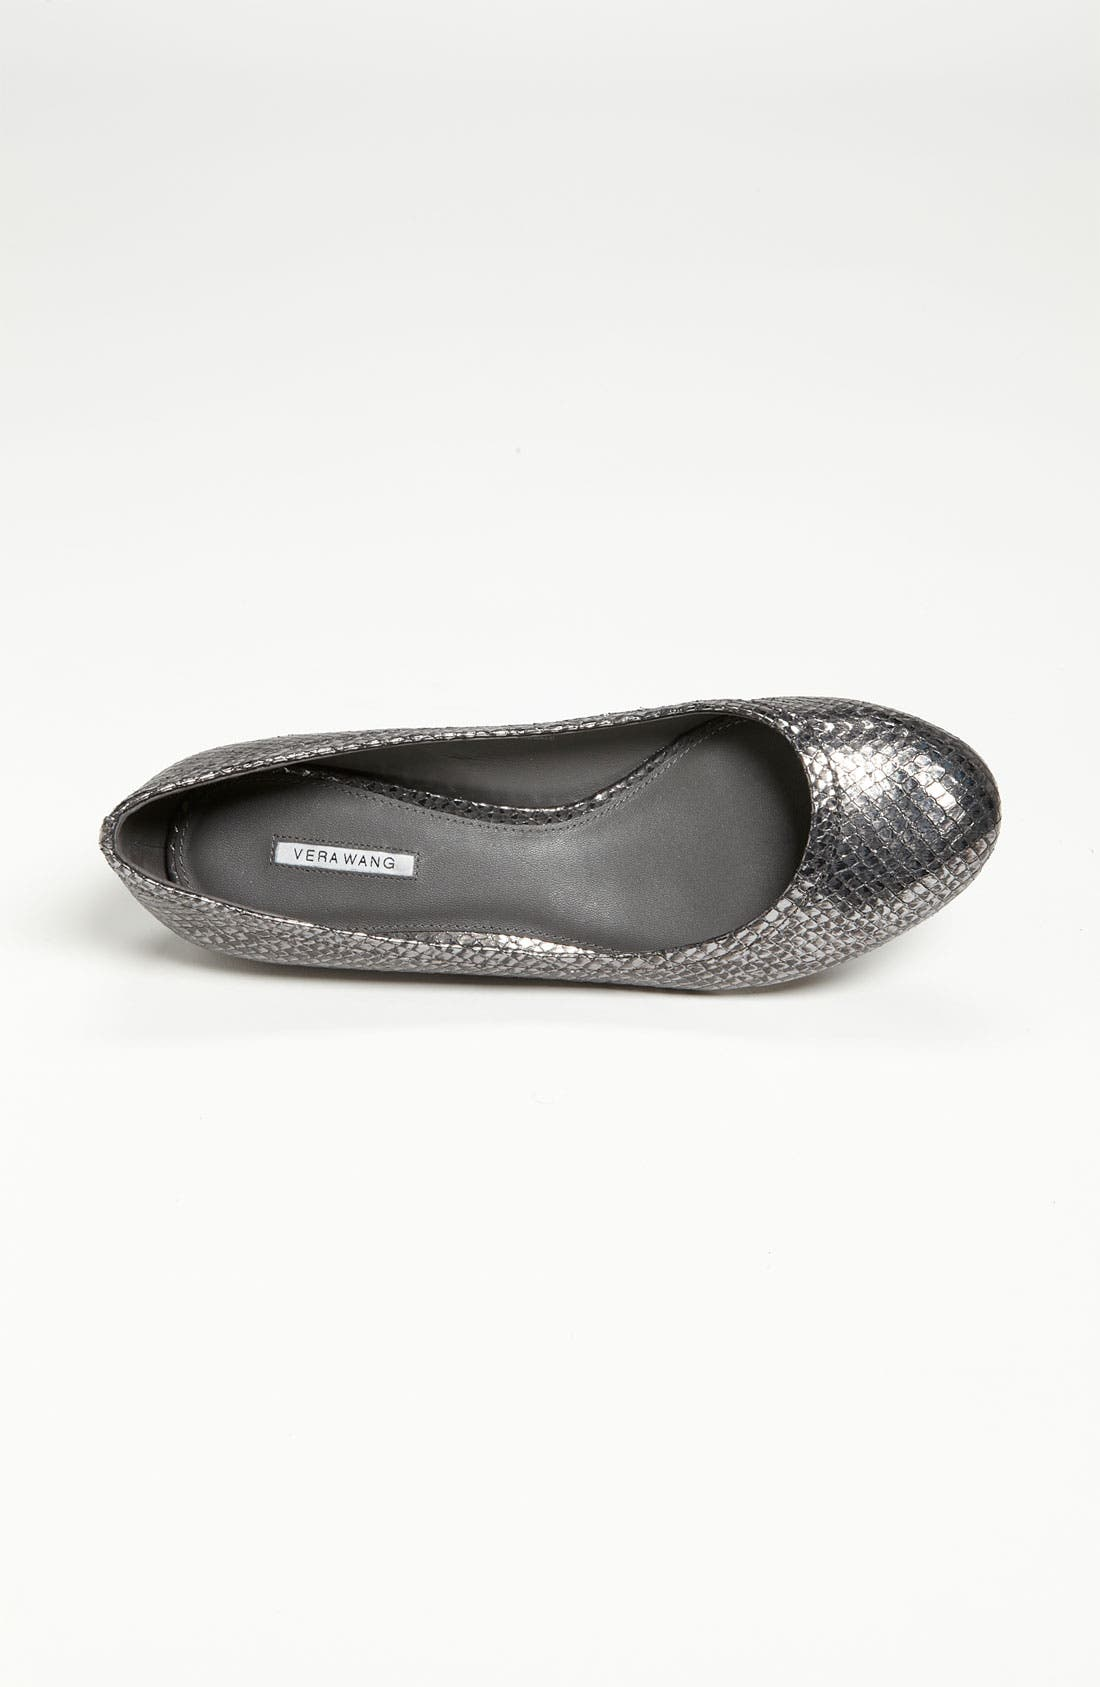 Alternate Image 3  - Vera Wang Footwear 'Hillary' Flat